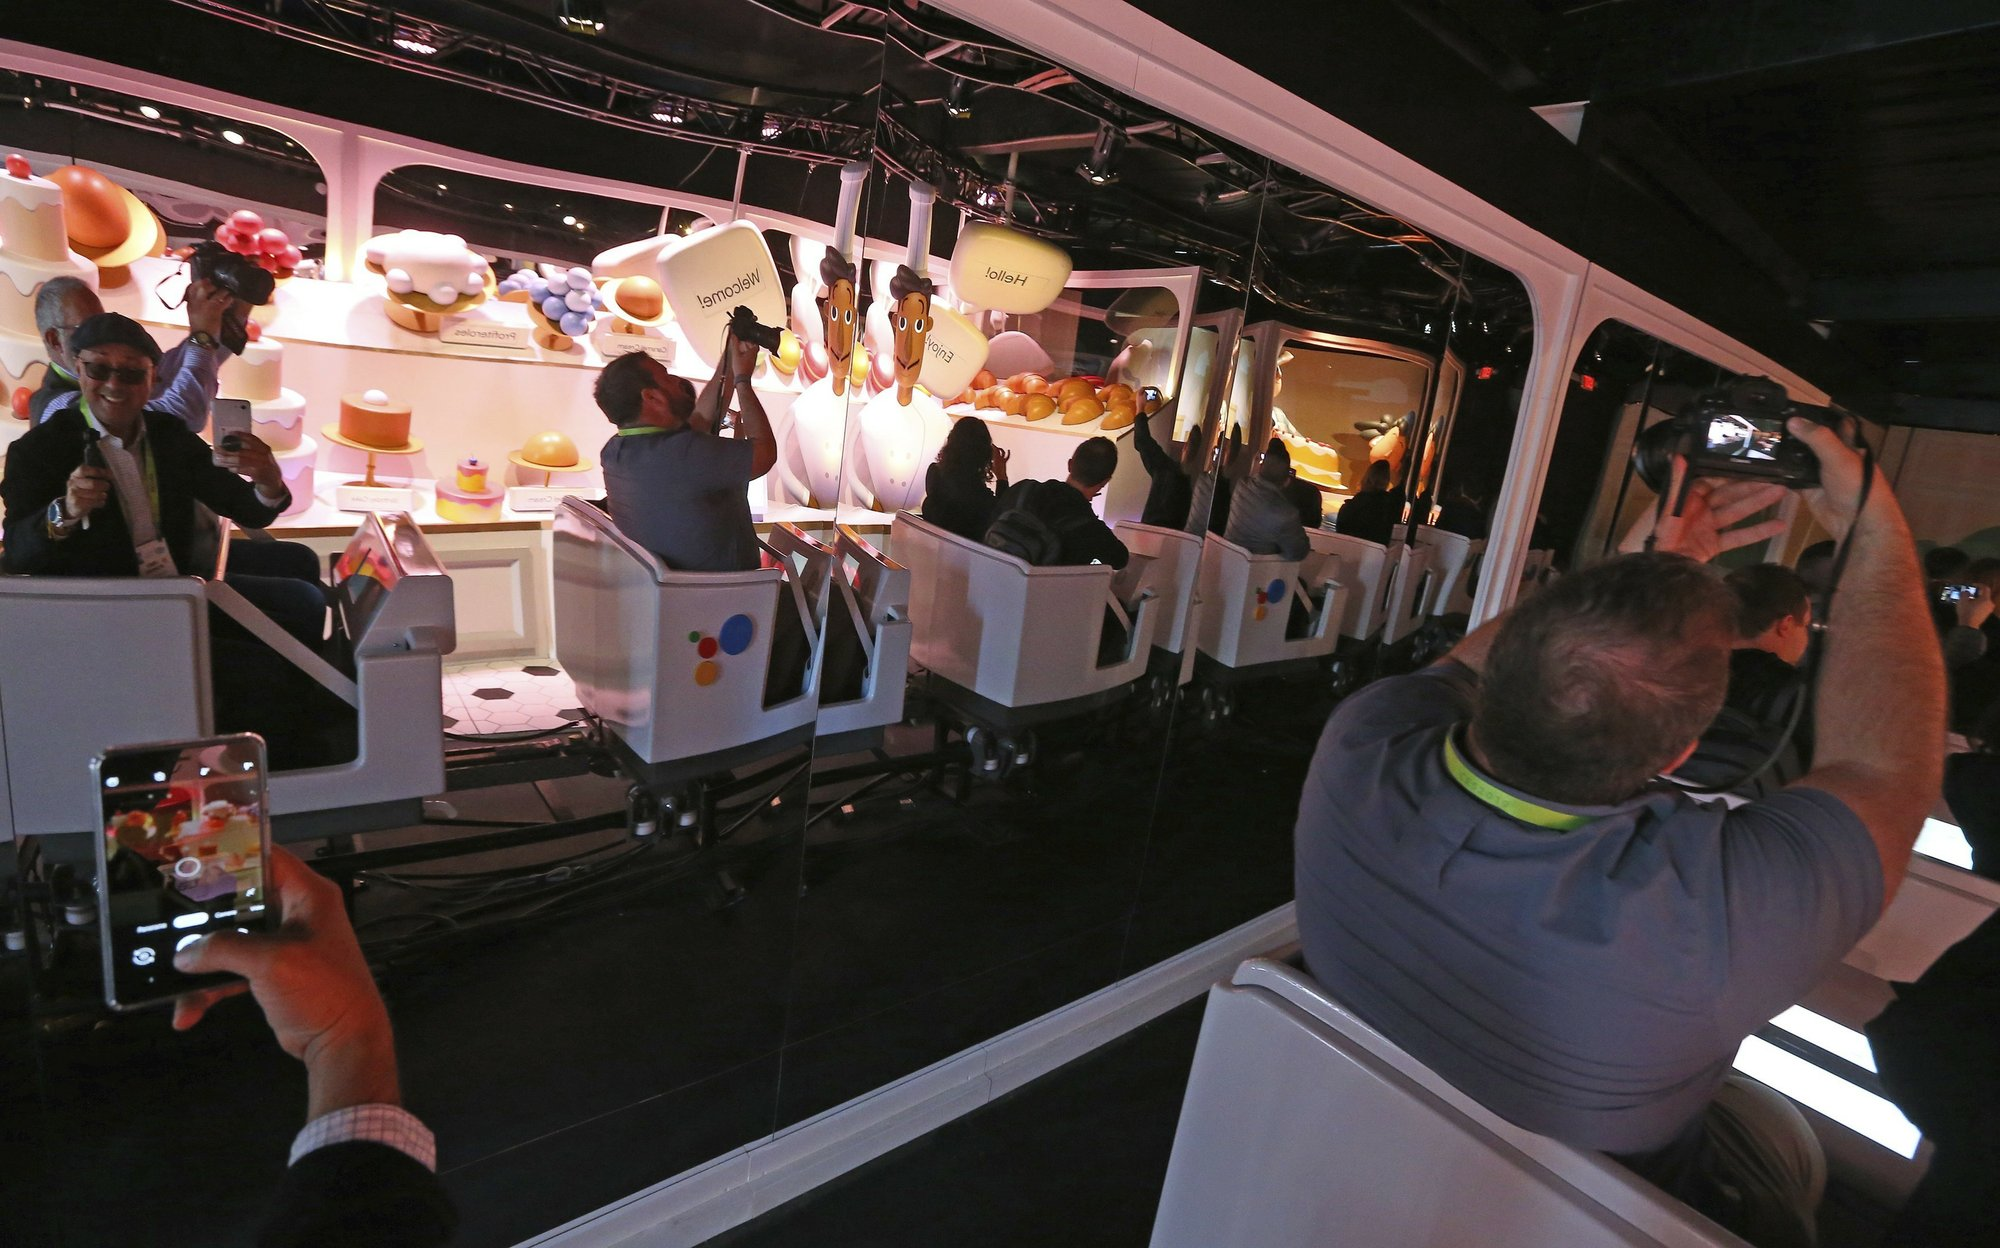 The Google Assistant ride shows off the new features in its voice-enabled digital assistant as visitors ride along at the Google display area at CES International on Tuesday, Jan. 8, 2019, in Las Vegas. Photo: AP